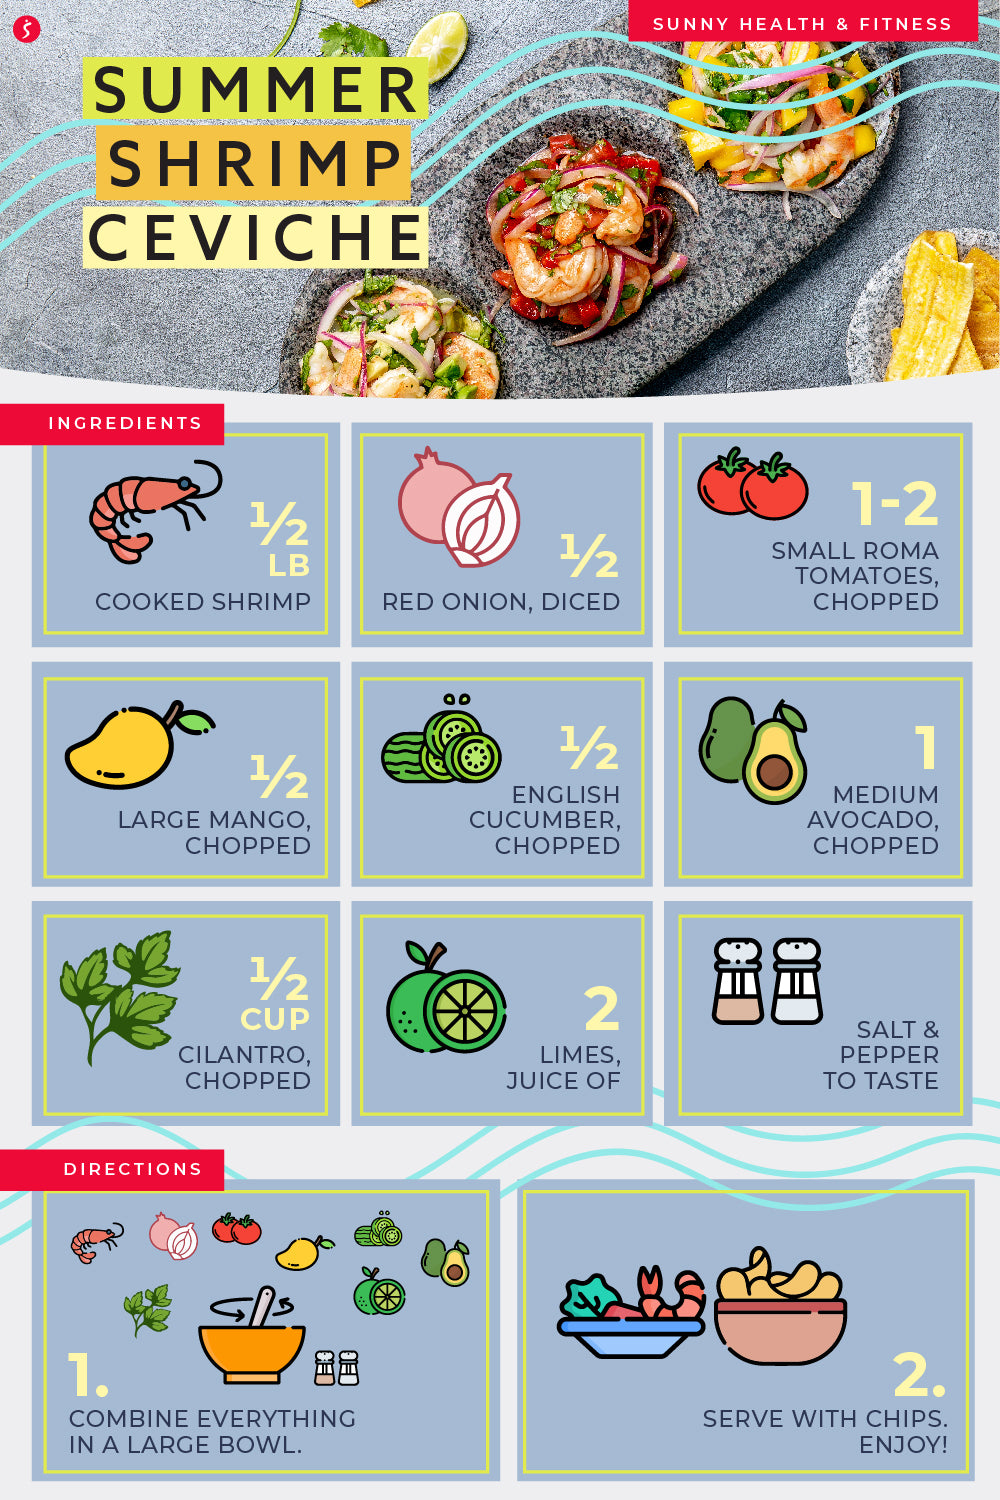 Summer Shrimp Ceviche Infographic